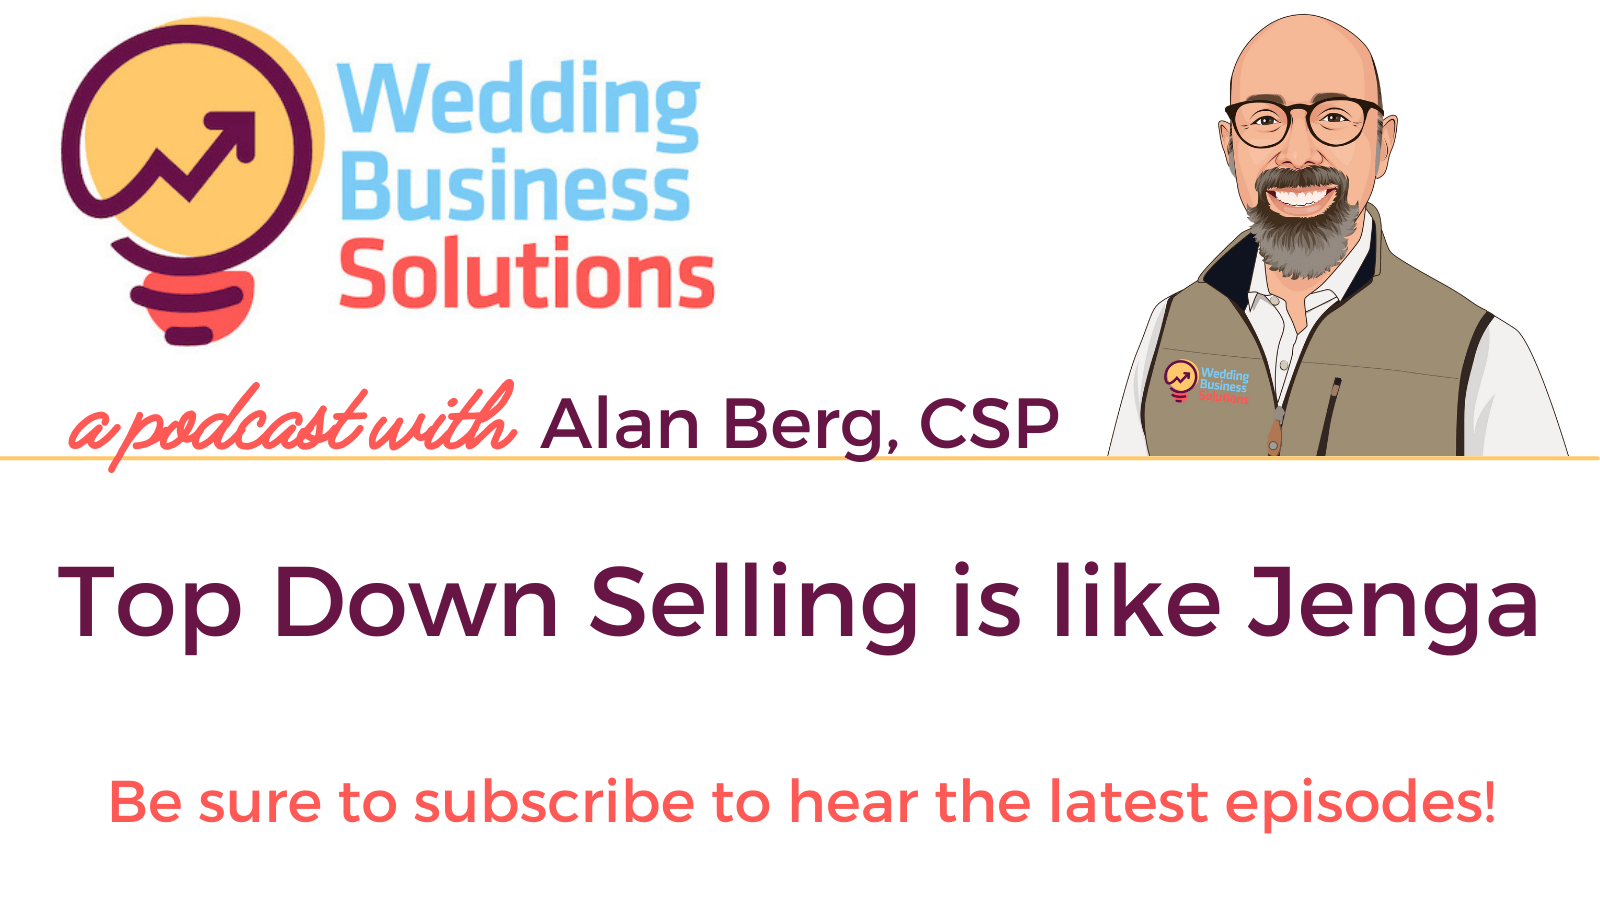 Wedding Business Solutions Podcast with Alan Berg CSP - Top Down Selling is like Jenga